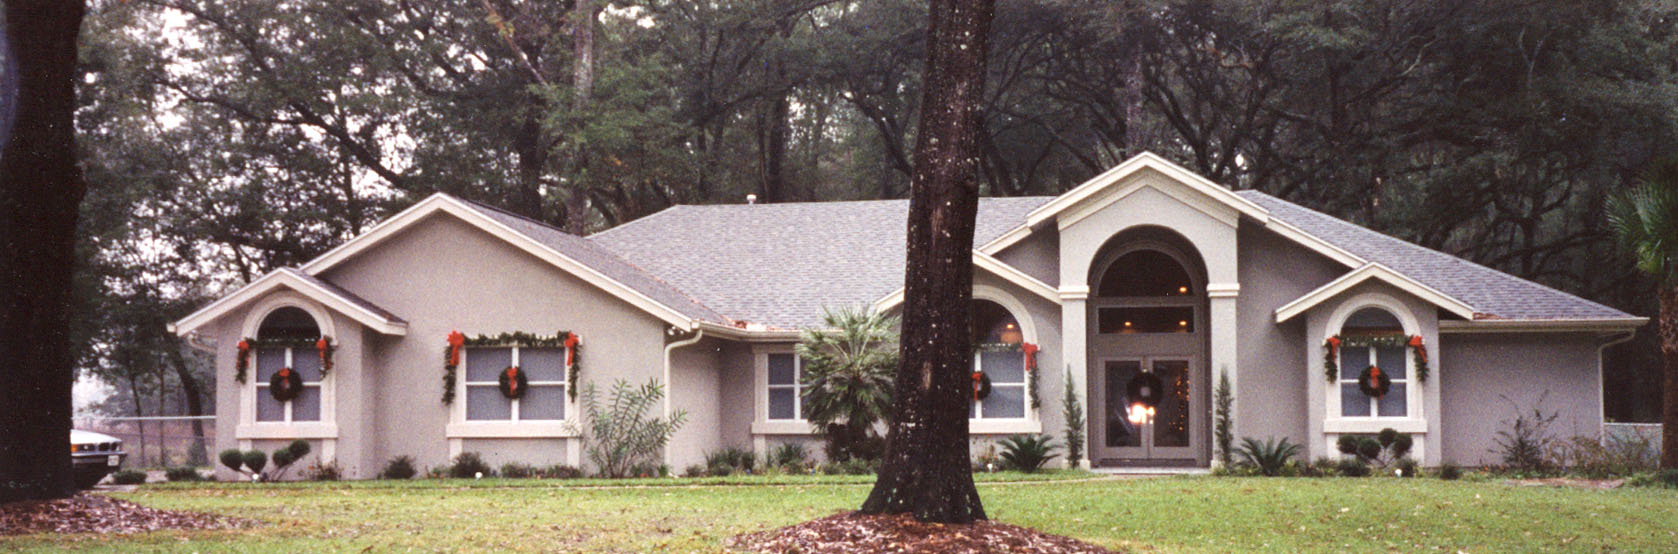 This home is located in norther Florida in the town of Live Oak, appropriately named